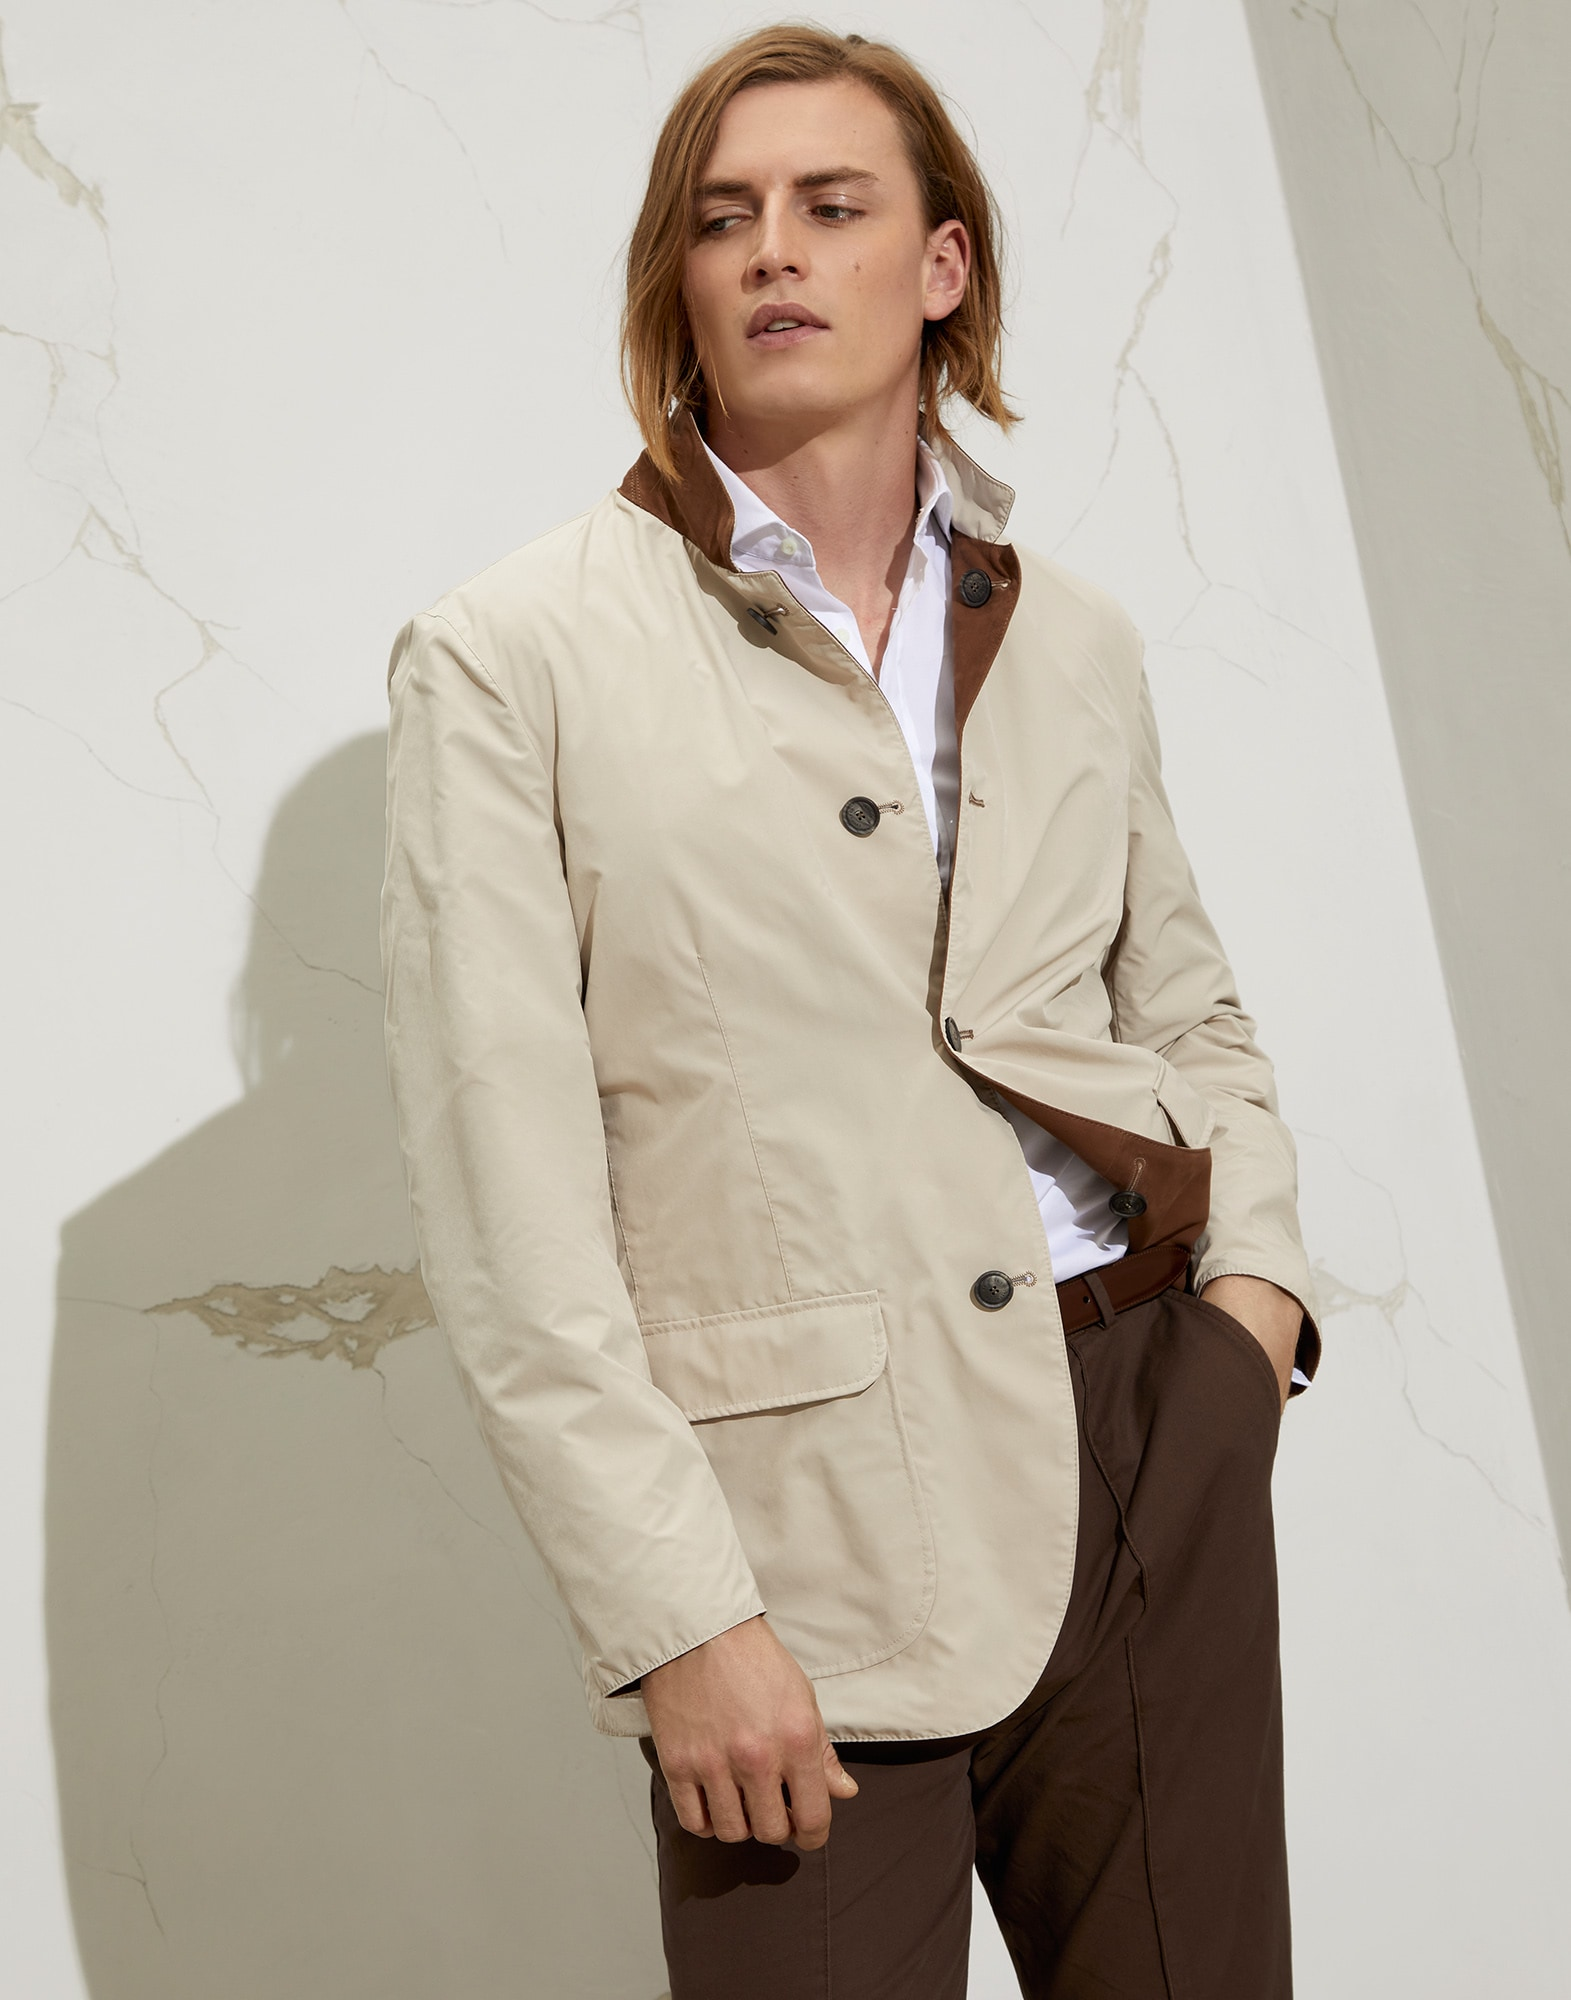 Jacket-style Outerwear - Front view